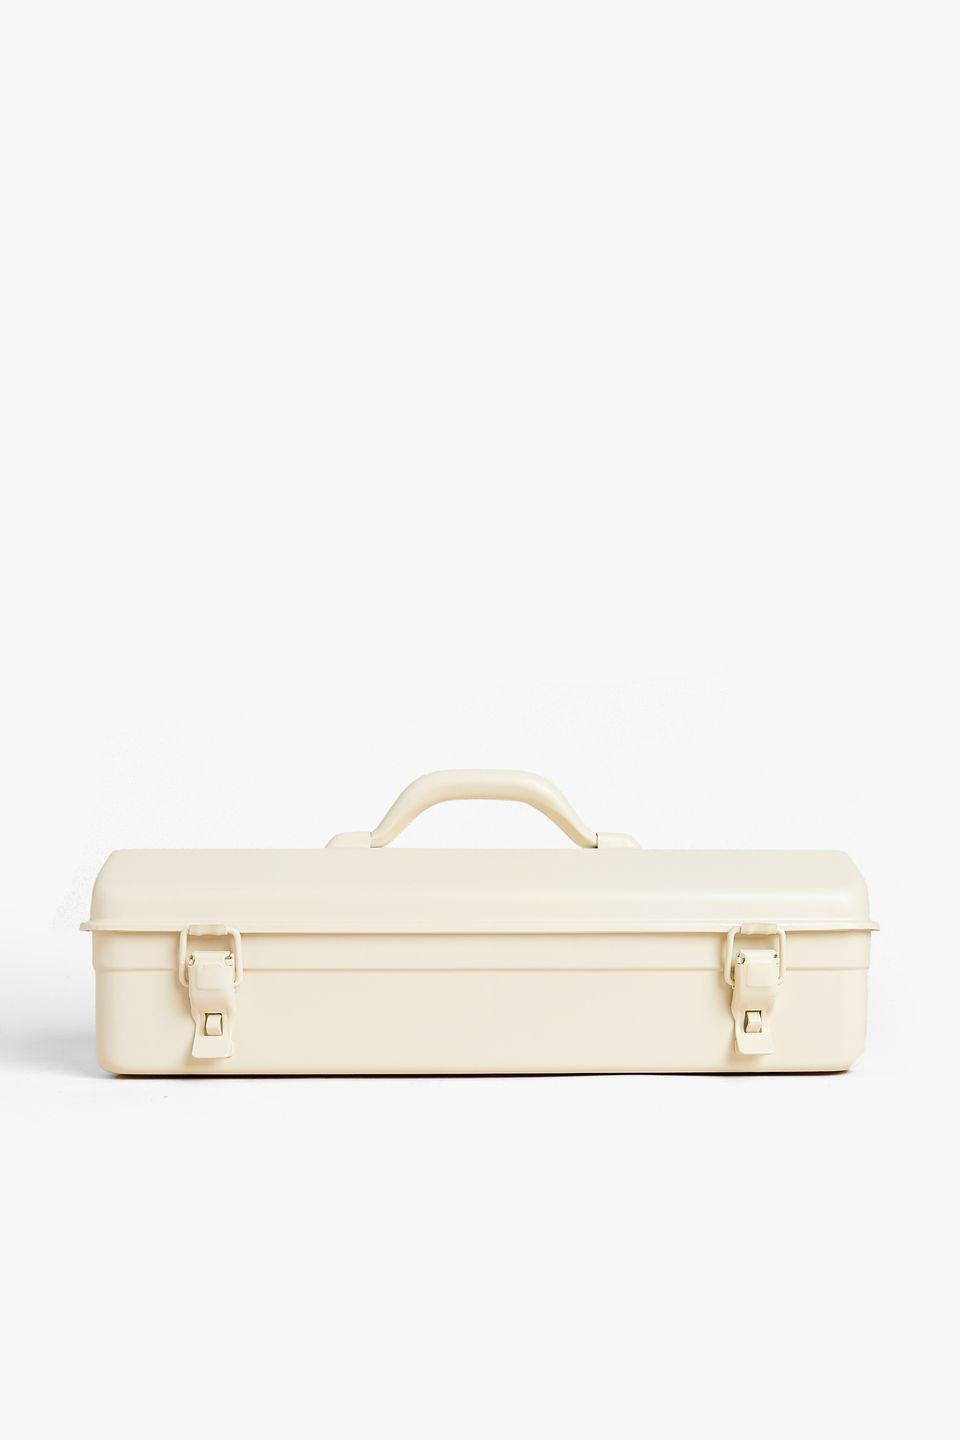 <p>Made of cream lacquered galvanised iron, this sleek, minimal tool box features a carry handle and double hook airtight fastening.</p>